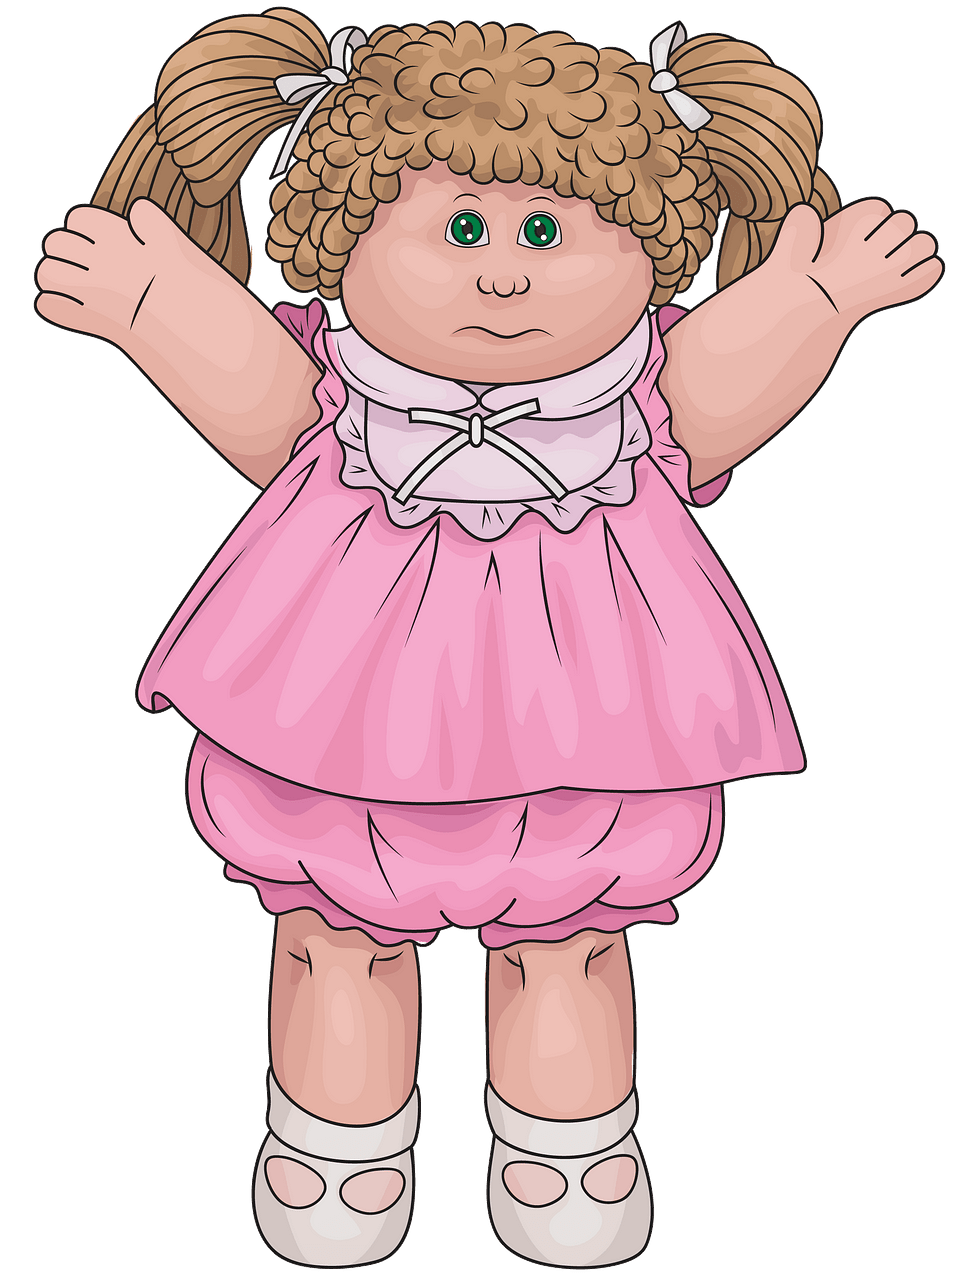 Cabbage clipart cabbage patch. Doll free download creazilla